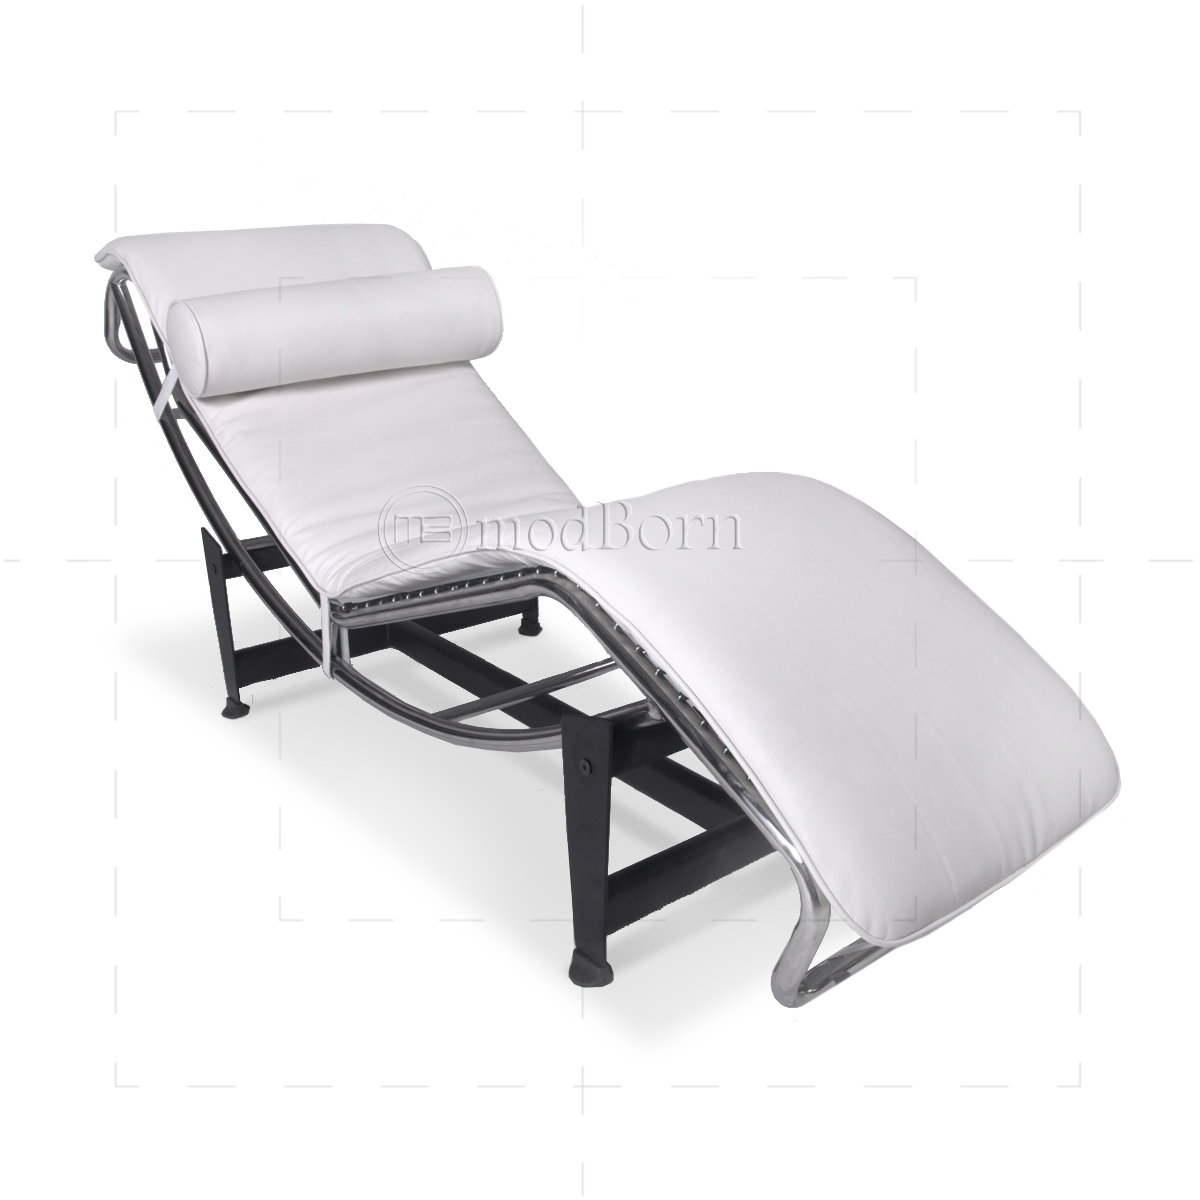 Le corbusier style lc4 chaise longue white leather replica for Chaise longue le corbusier wikipedia